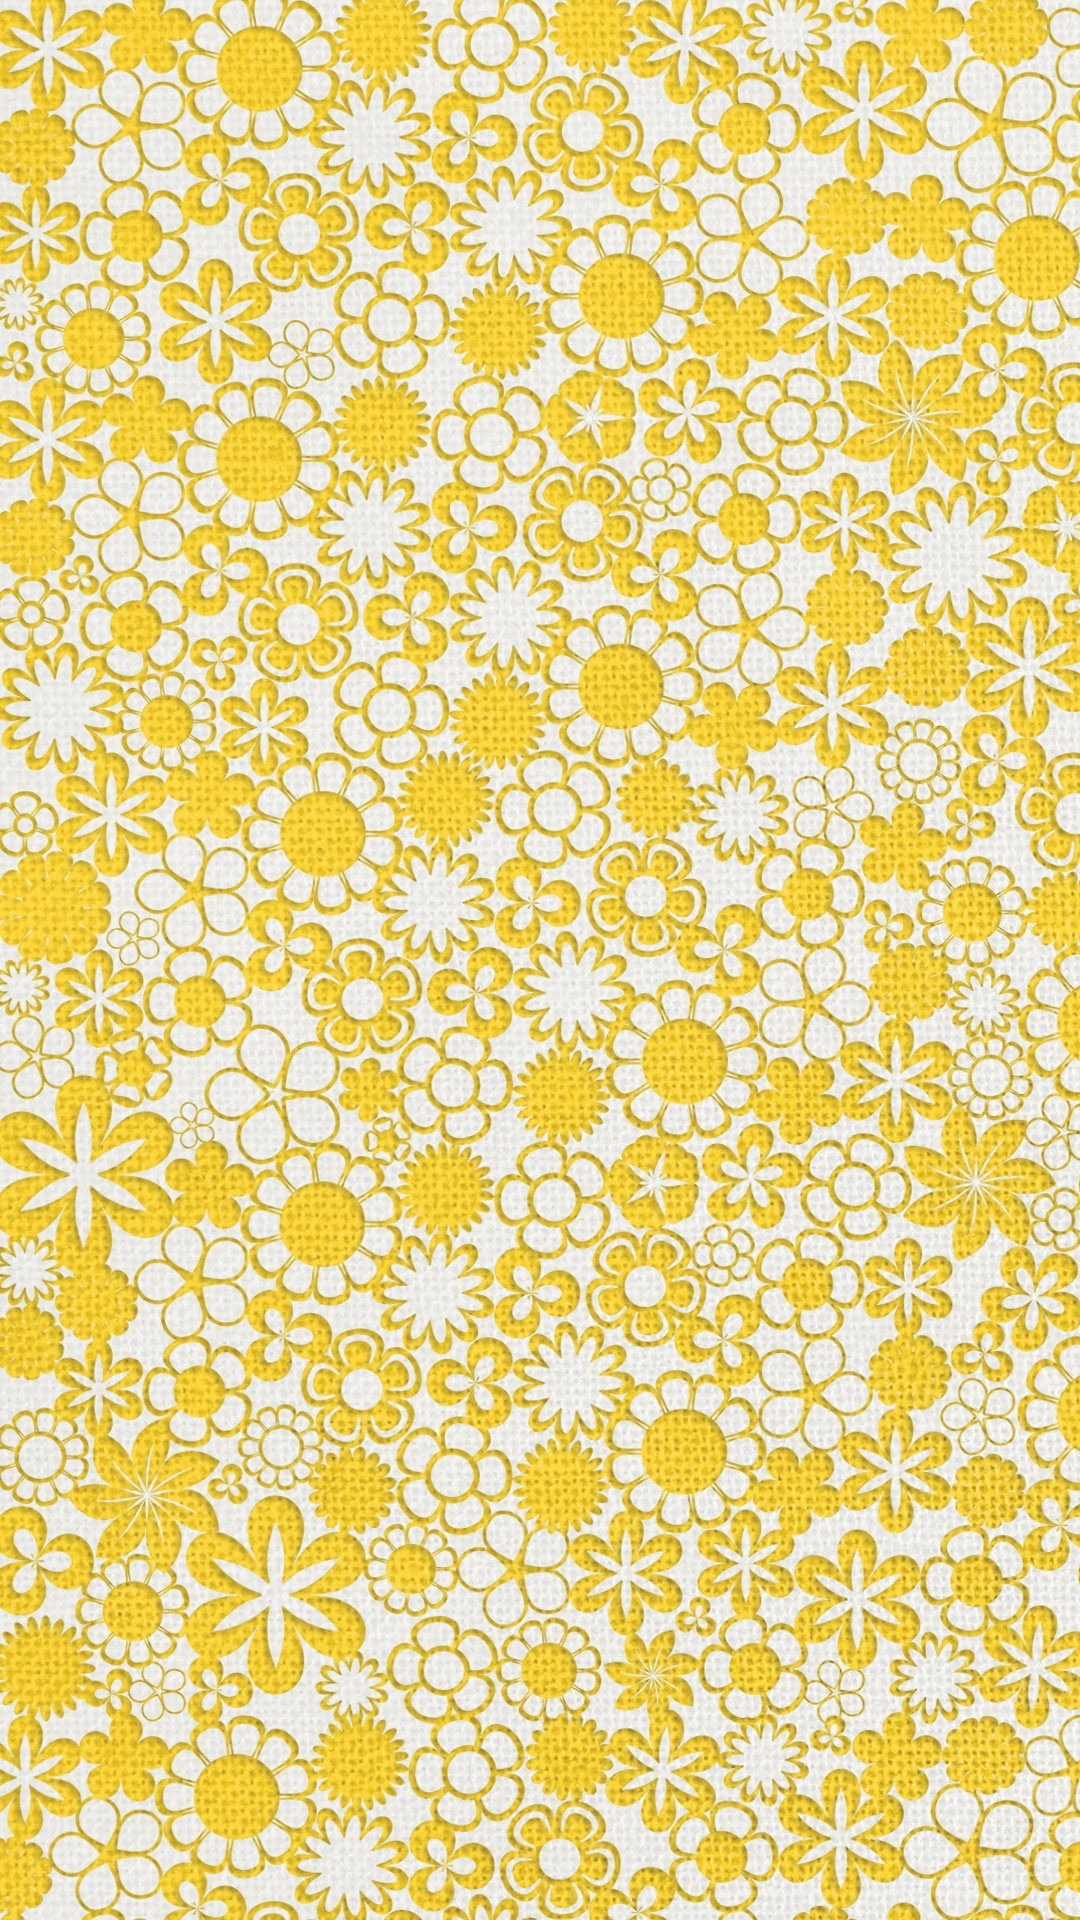 Game Cute Wallpaper Floral Yellow Iphone Wallpaper